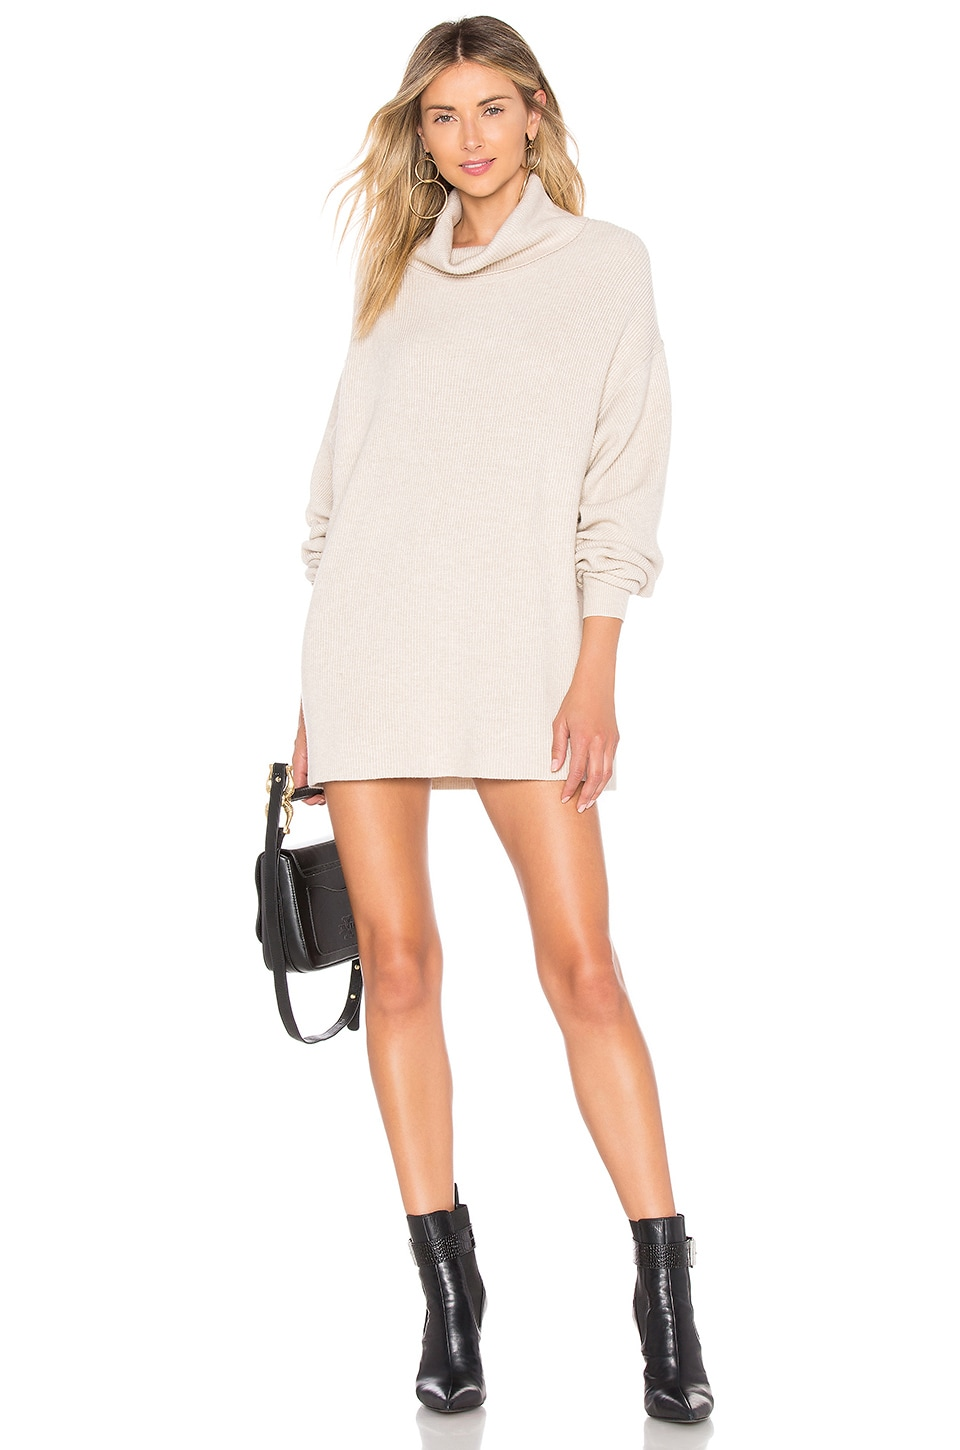 Free People Softly Structured Tunic in Heather Oatmeal